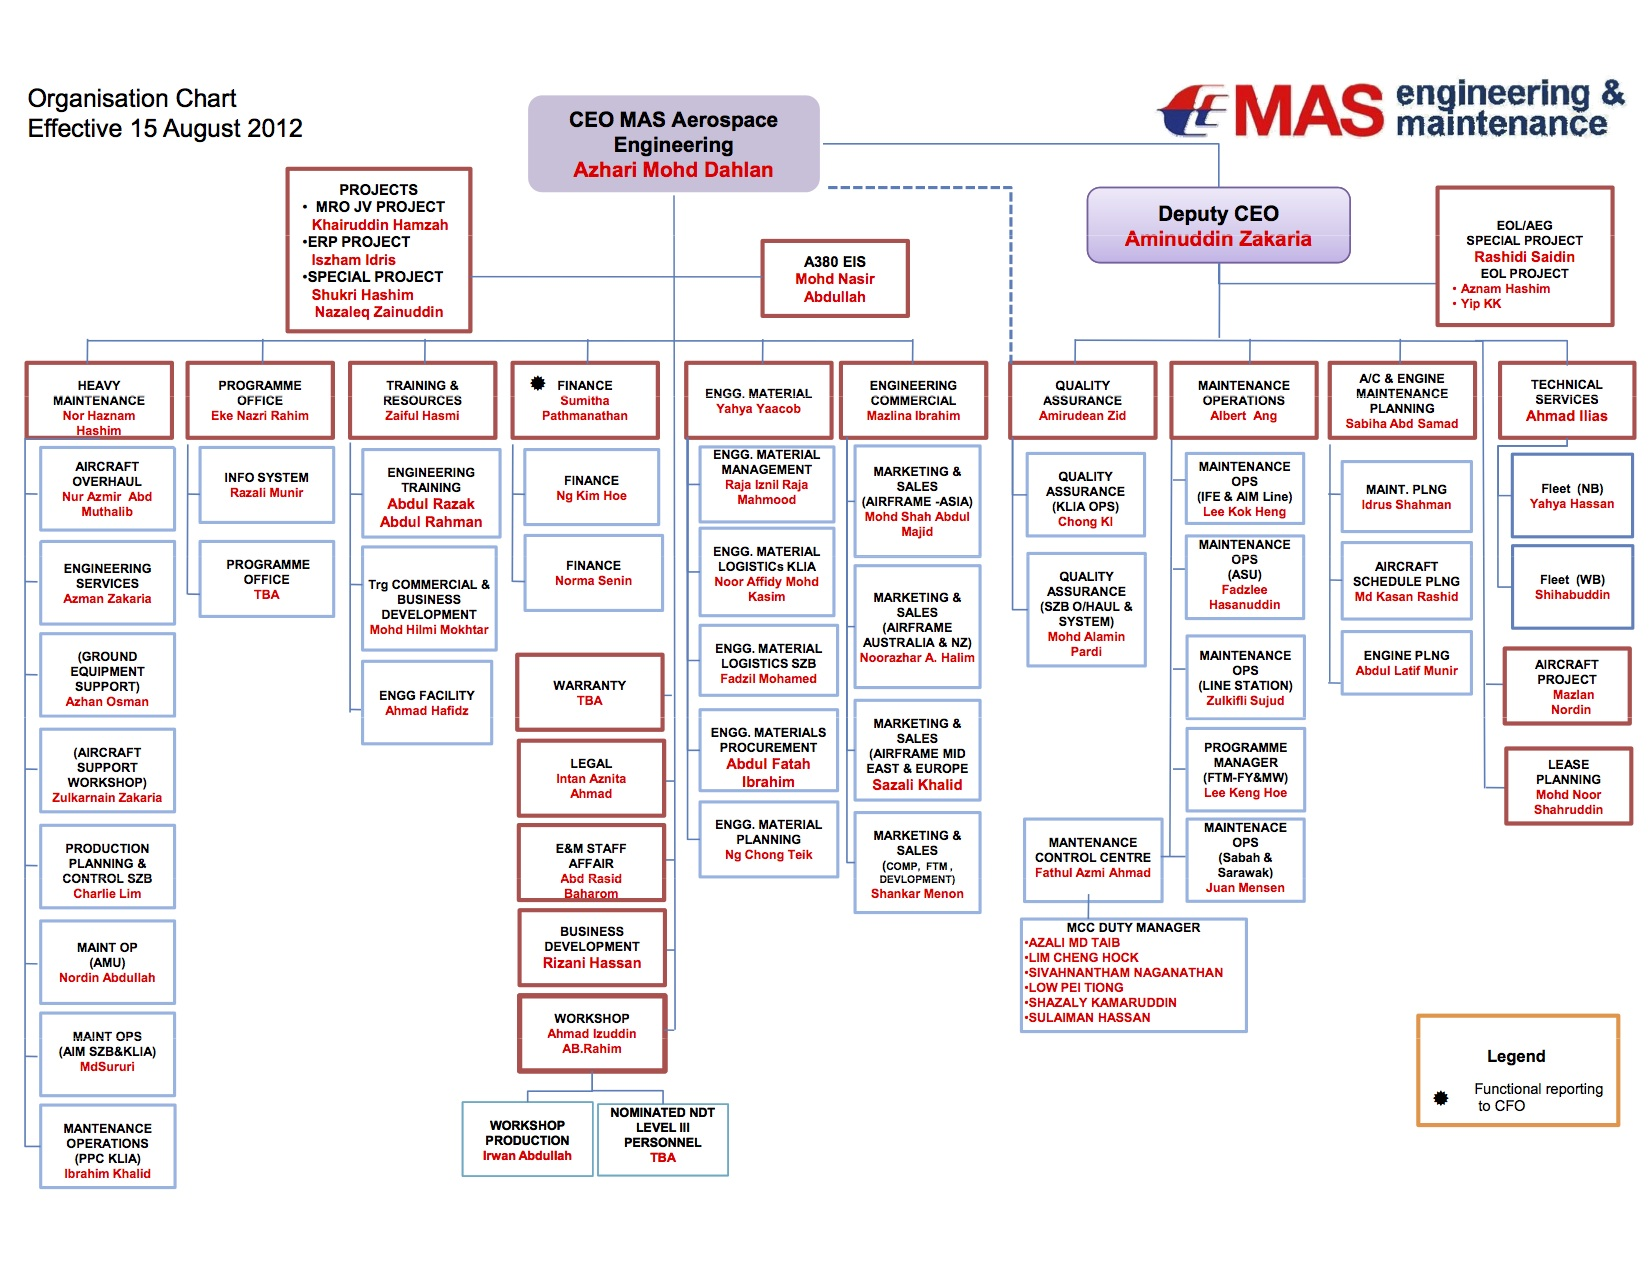 malaysia airlines organization structure At malaysia airports, we believe that great leadership comes from structure the kind that allows management to turn any decision made by the board into actionable plans with positive results we have over 11,000 employees across malaysia.